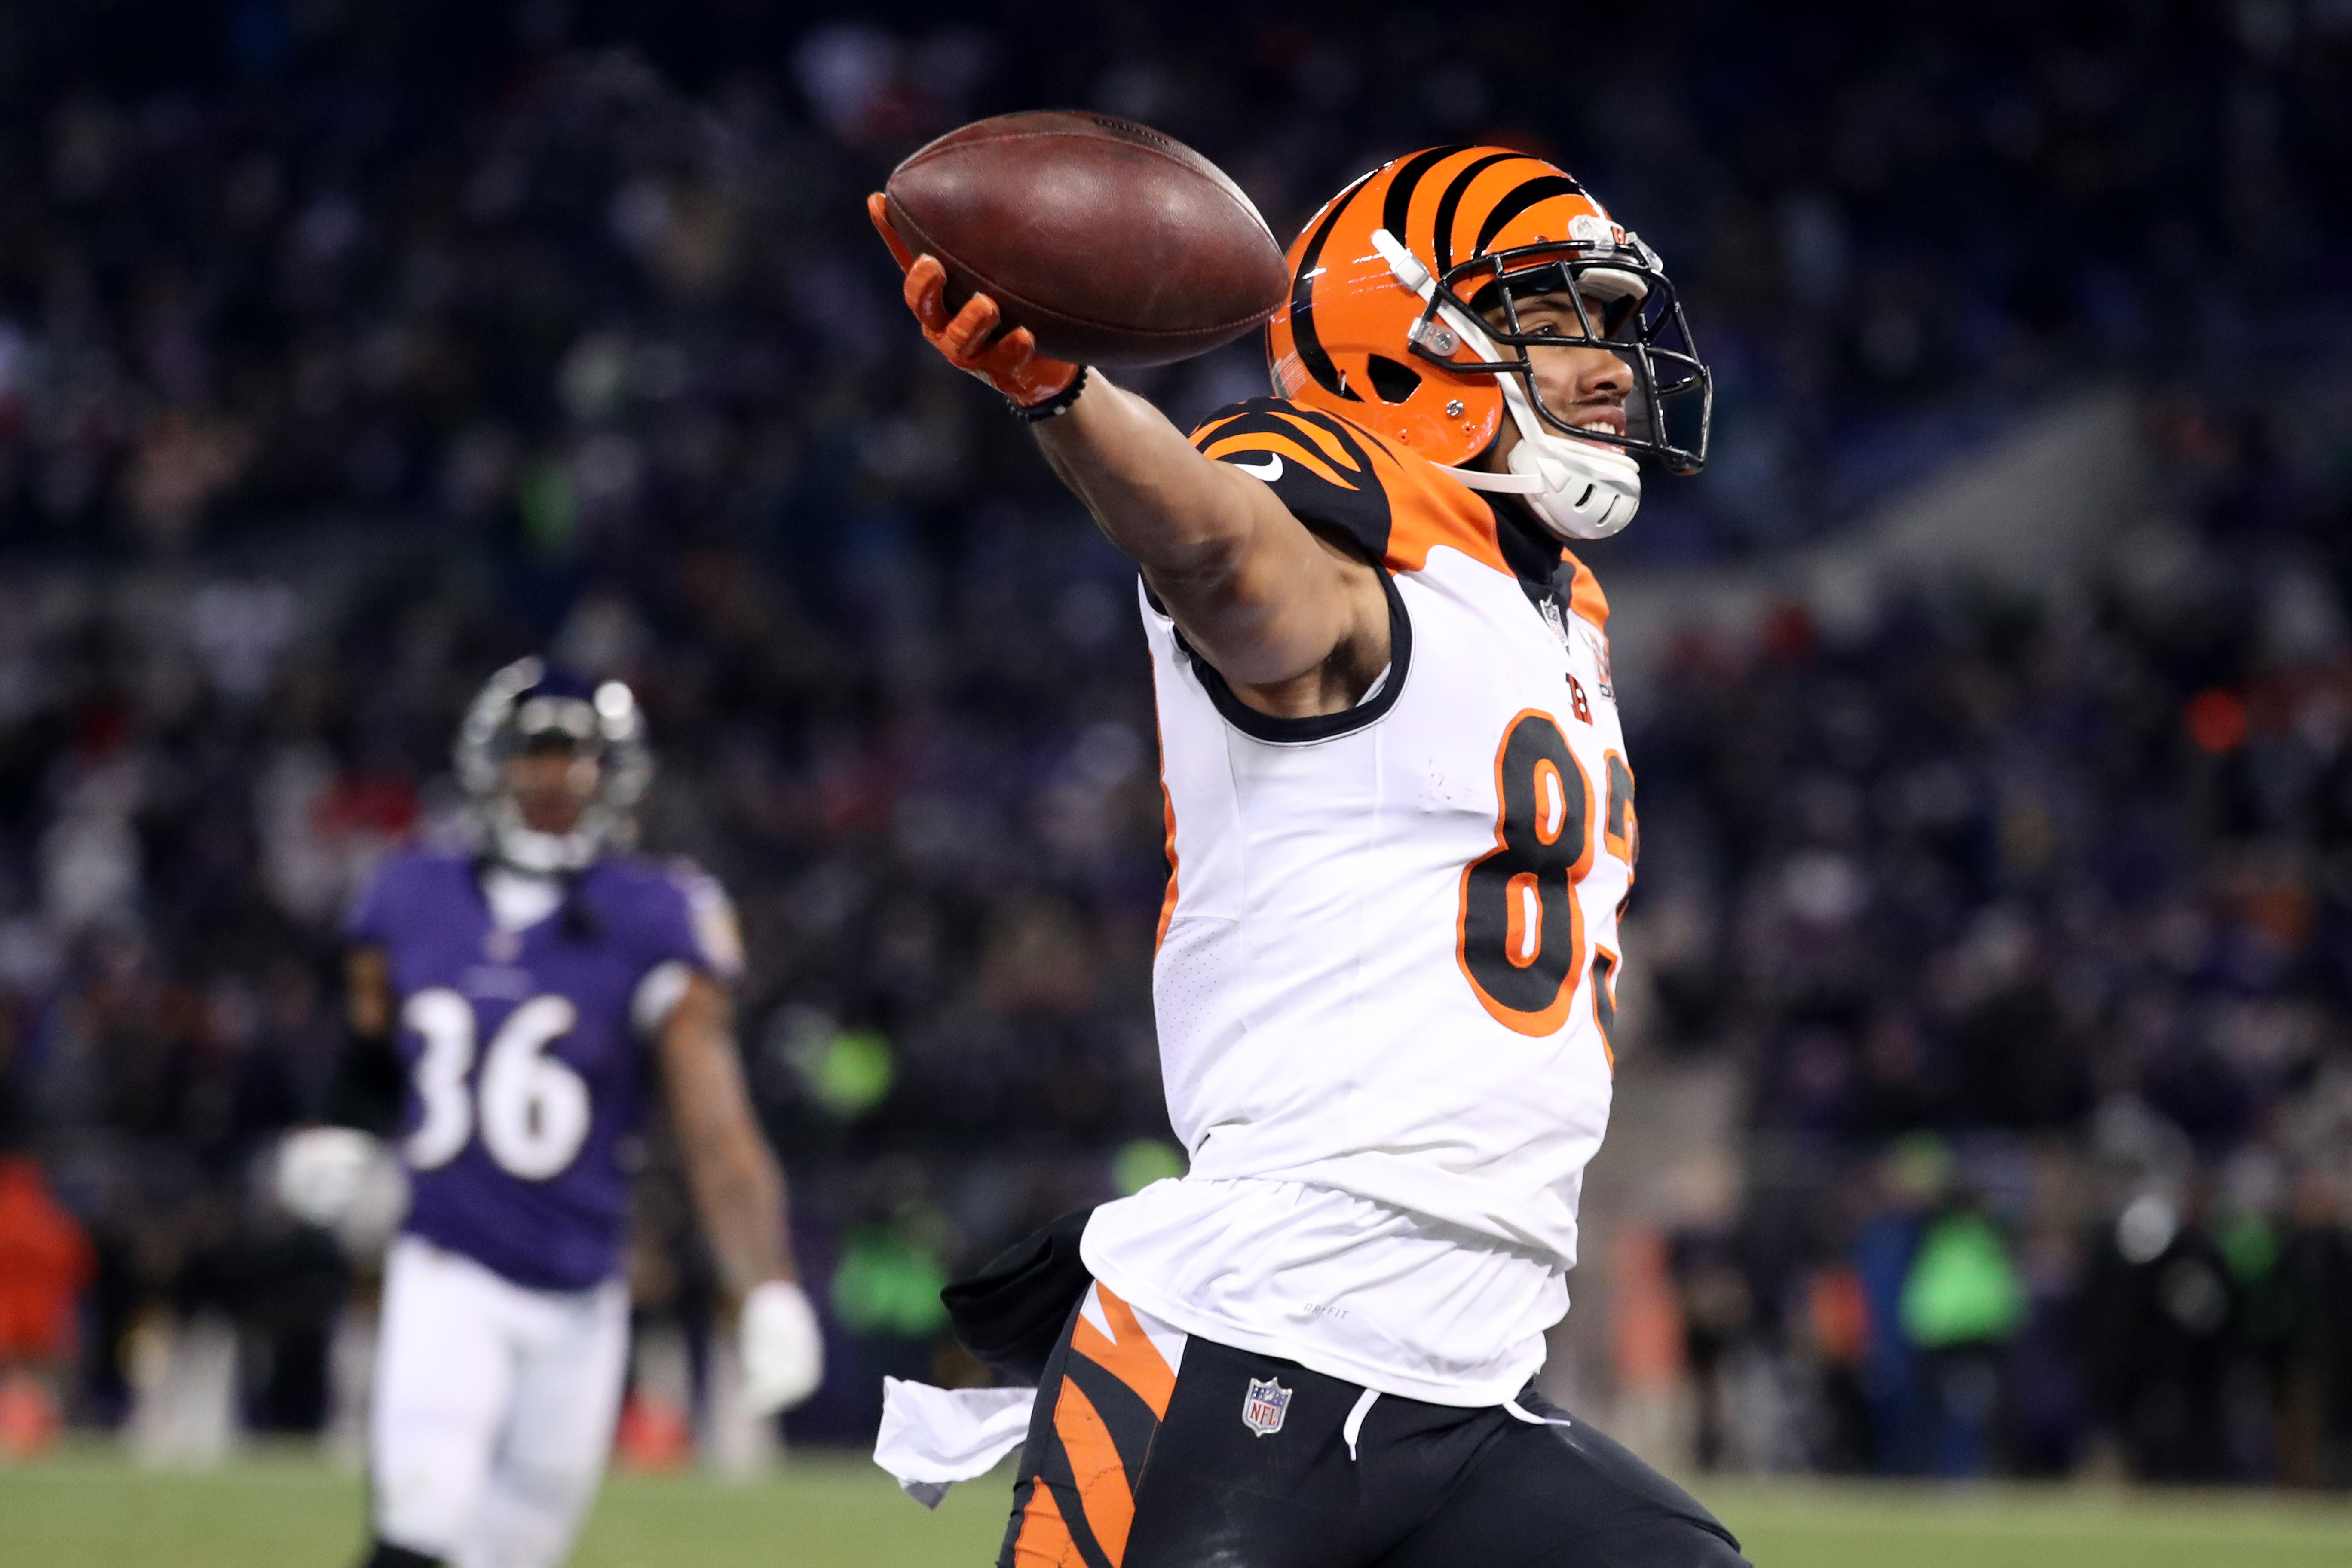 Bengals\' Andy Dalton: An improbable hero to a devoted Bills fanbase  lDBC5s8a